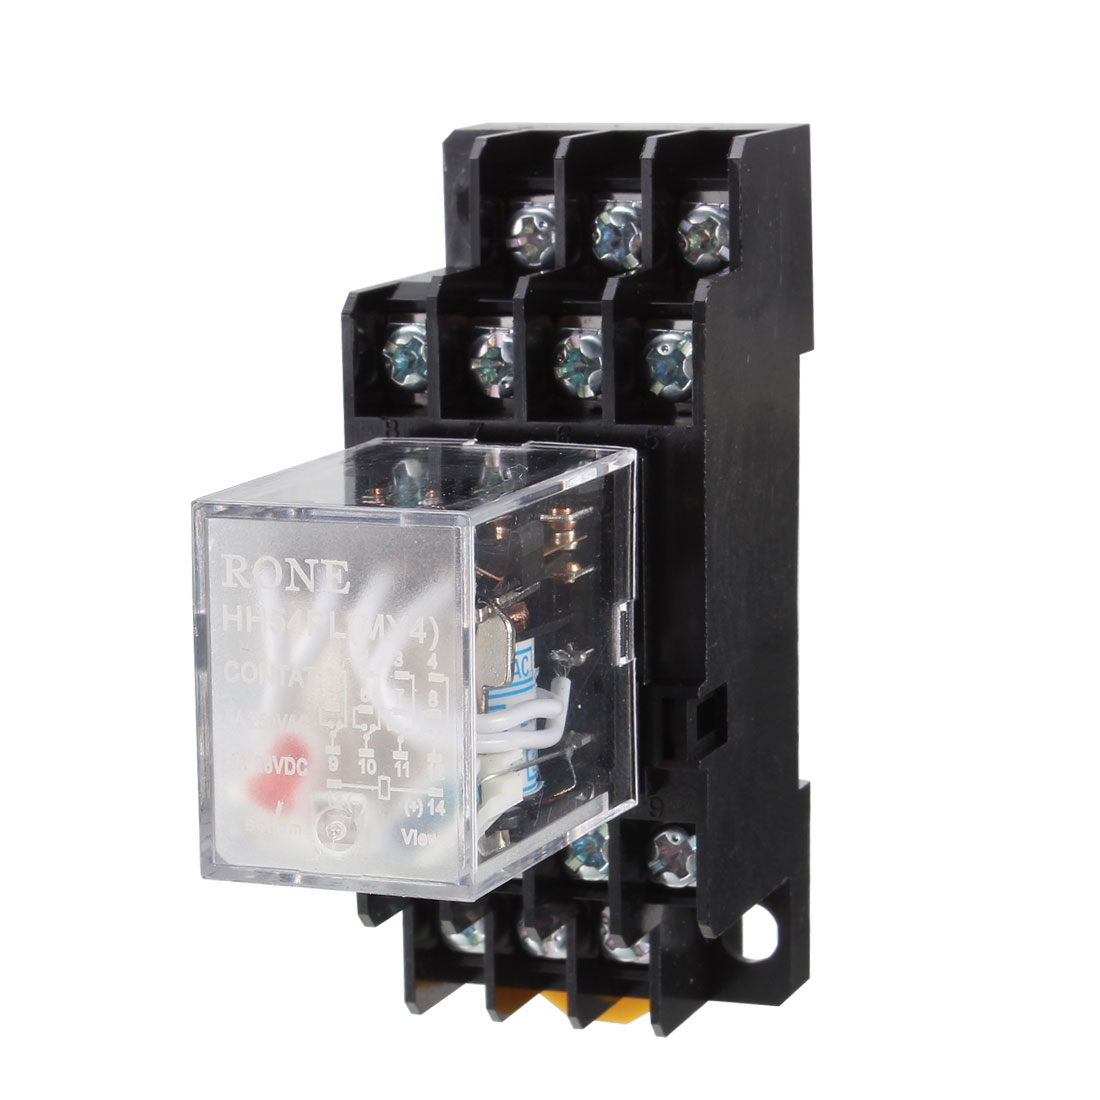 10Pcs HH54PL AC24V Coil Red Light 4PDT 4NO 4NC 14 Pins Pluggable Type 35mm DIN Rail Mounting Power Relay w Socket